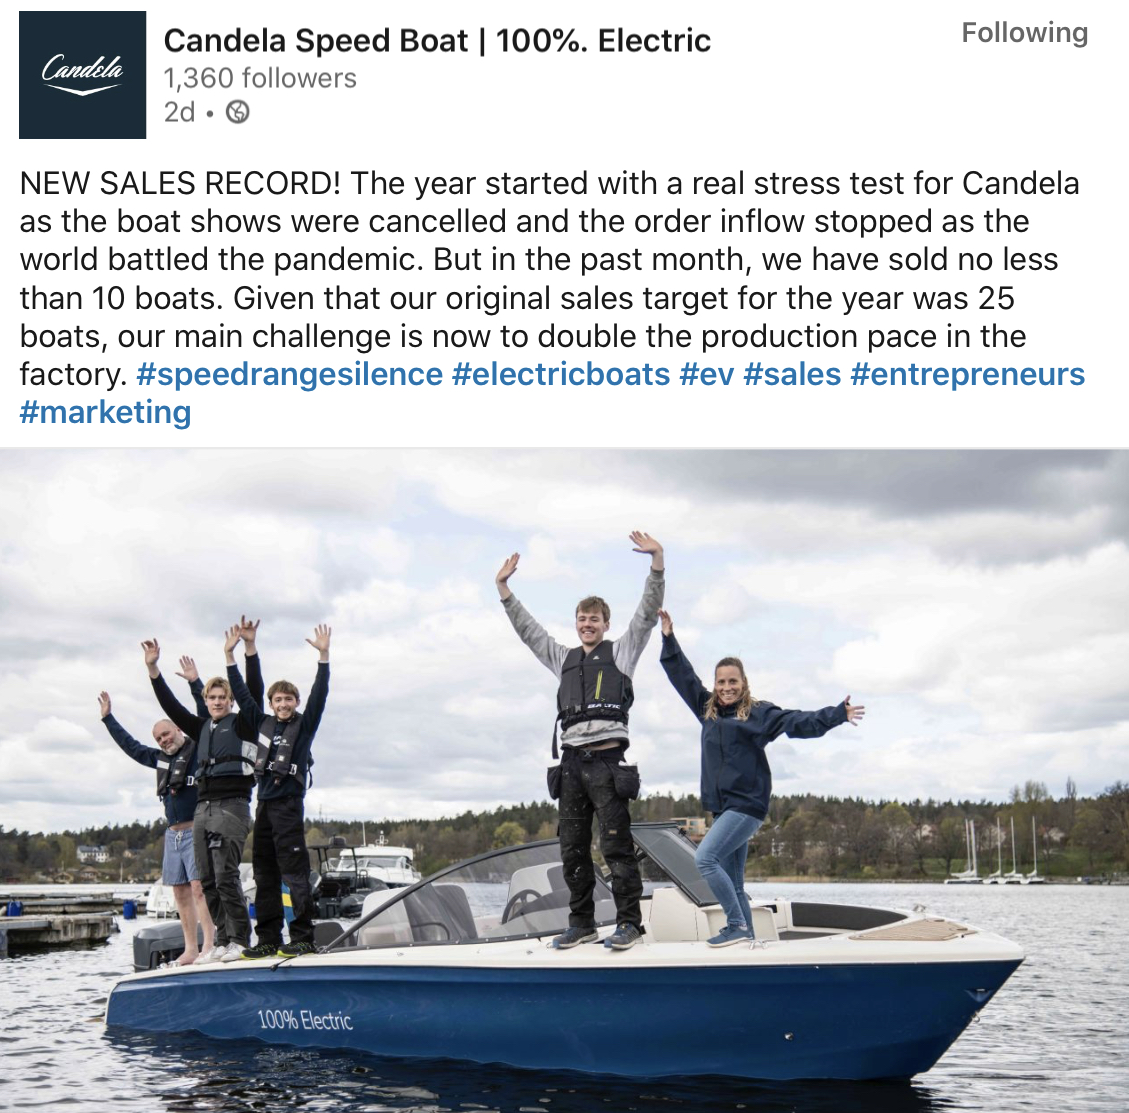 Candela Speed Boat | 100% Electric